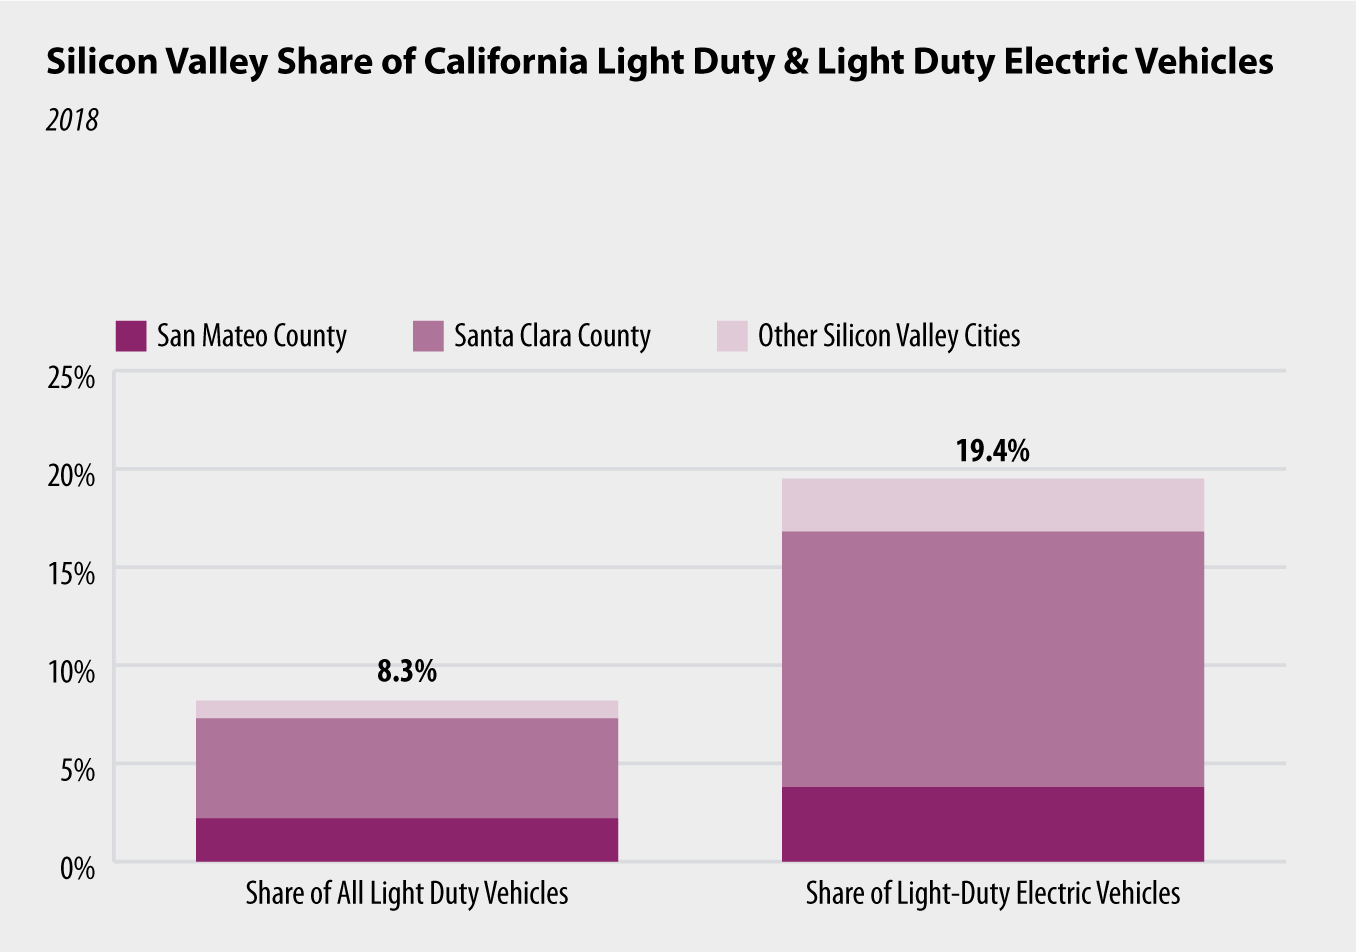 Chart 7: Silicon Valley Share of California Light Duty & Light Duty Electric Vehicles